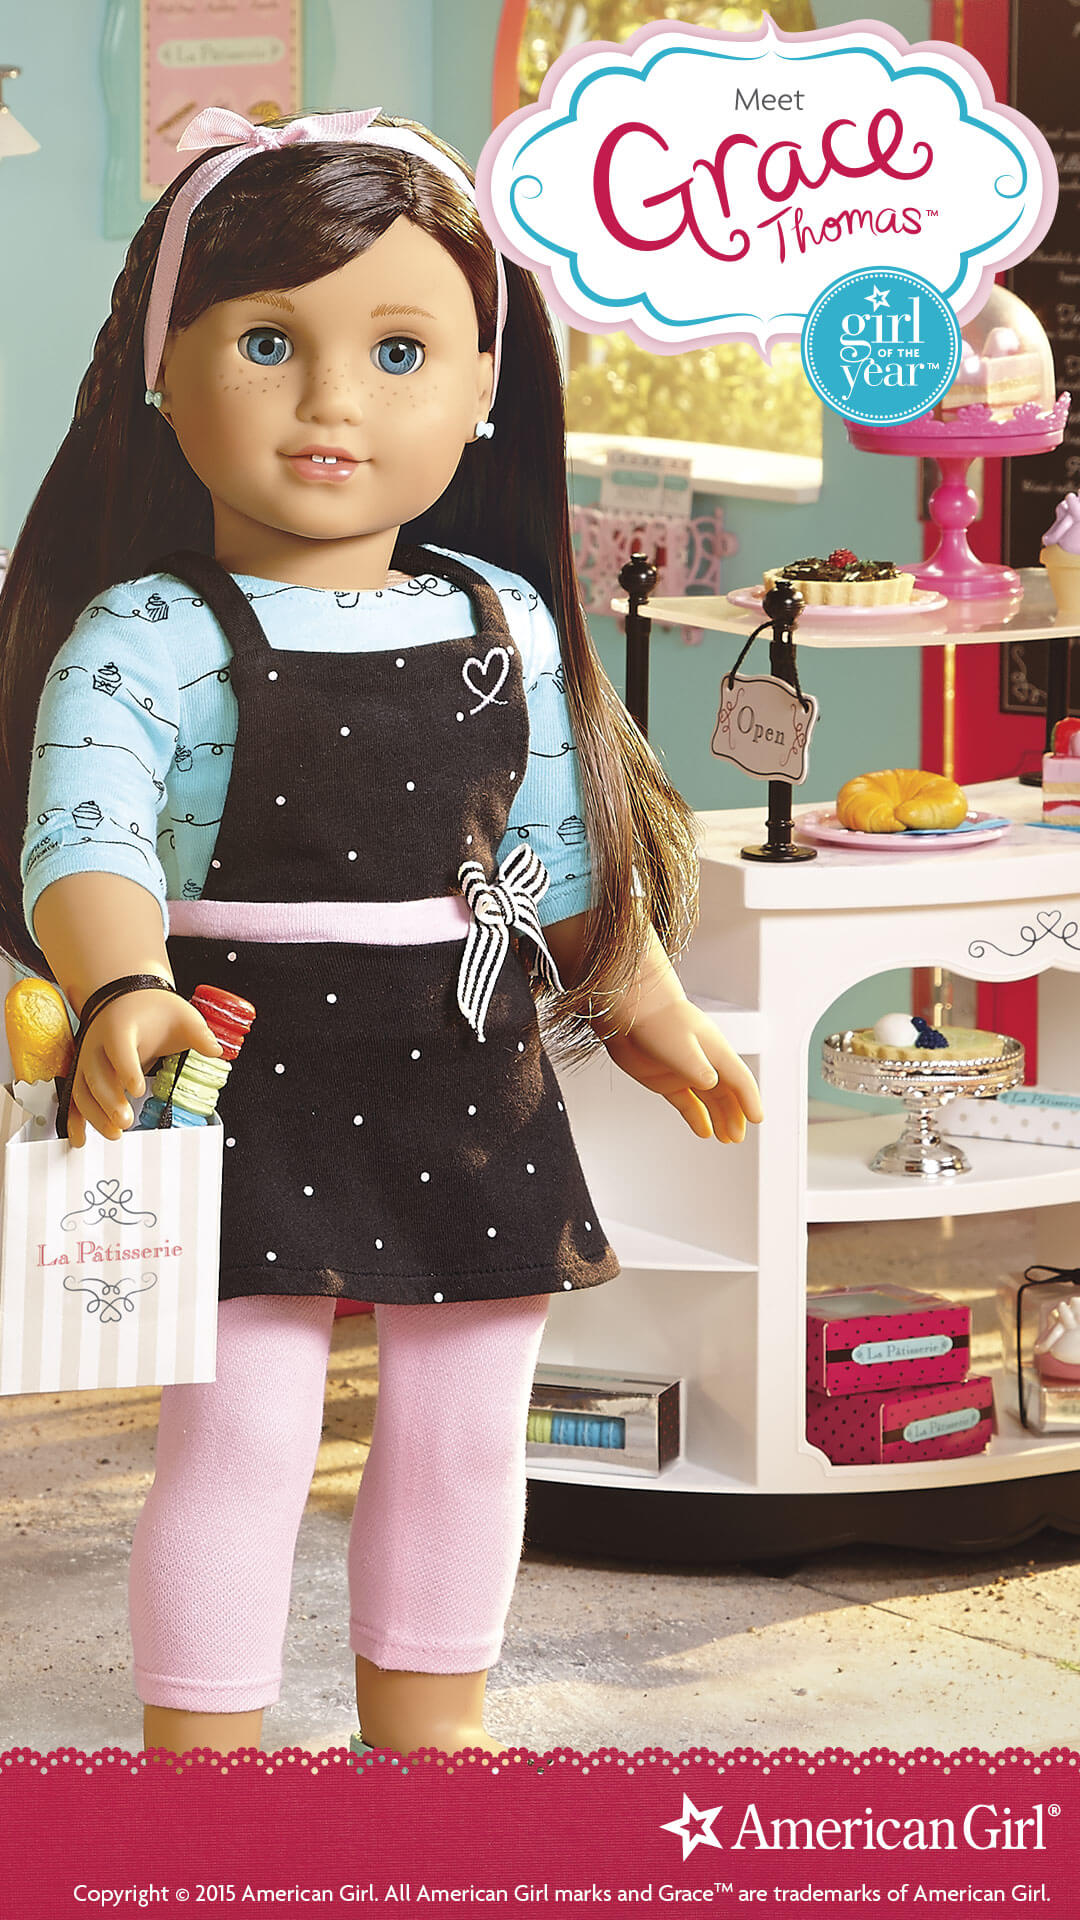 american girl of the year grace play at american girl. Black Bedroom Furniture Sets. Home Design Ideas